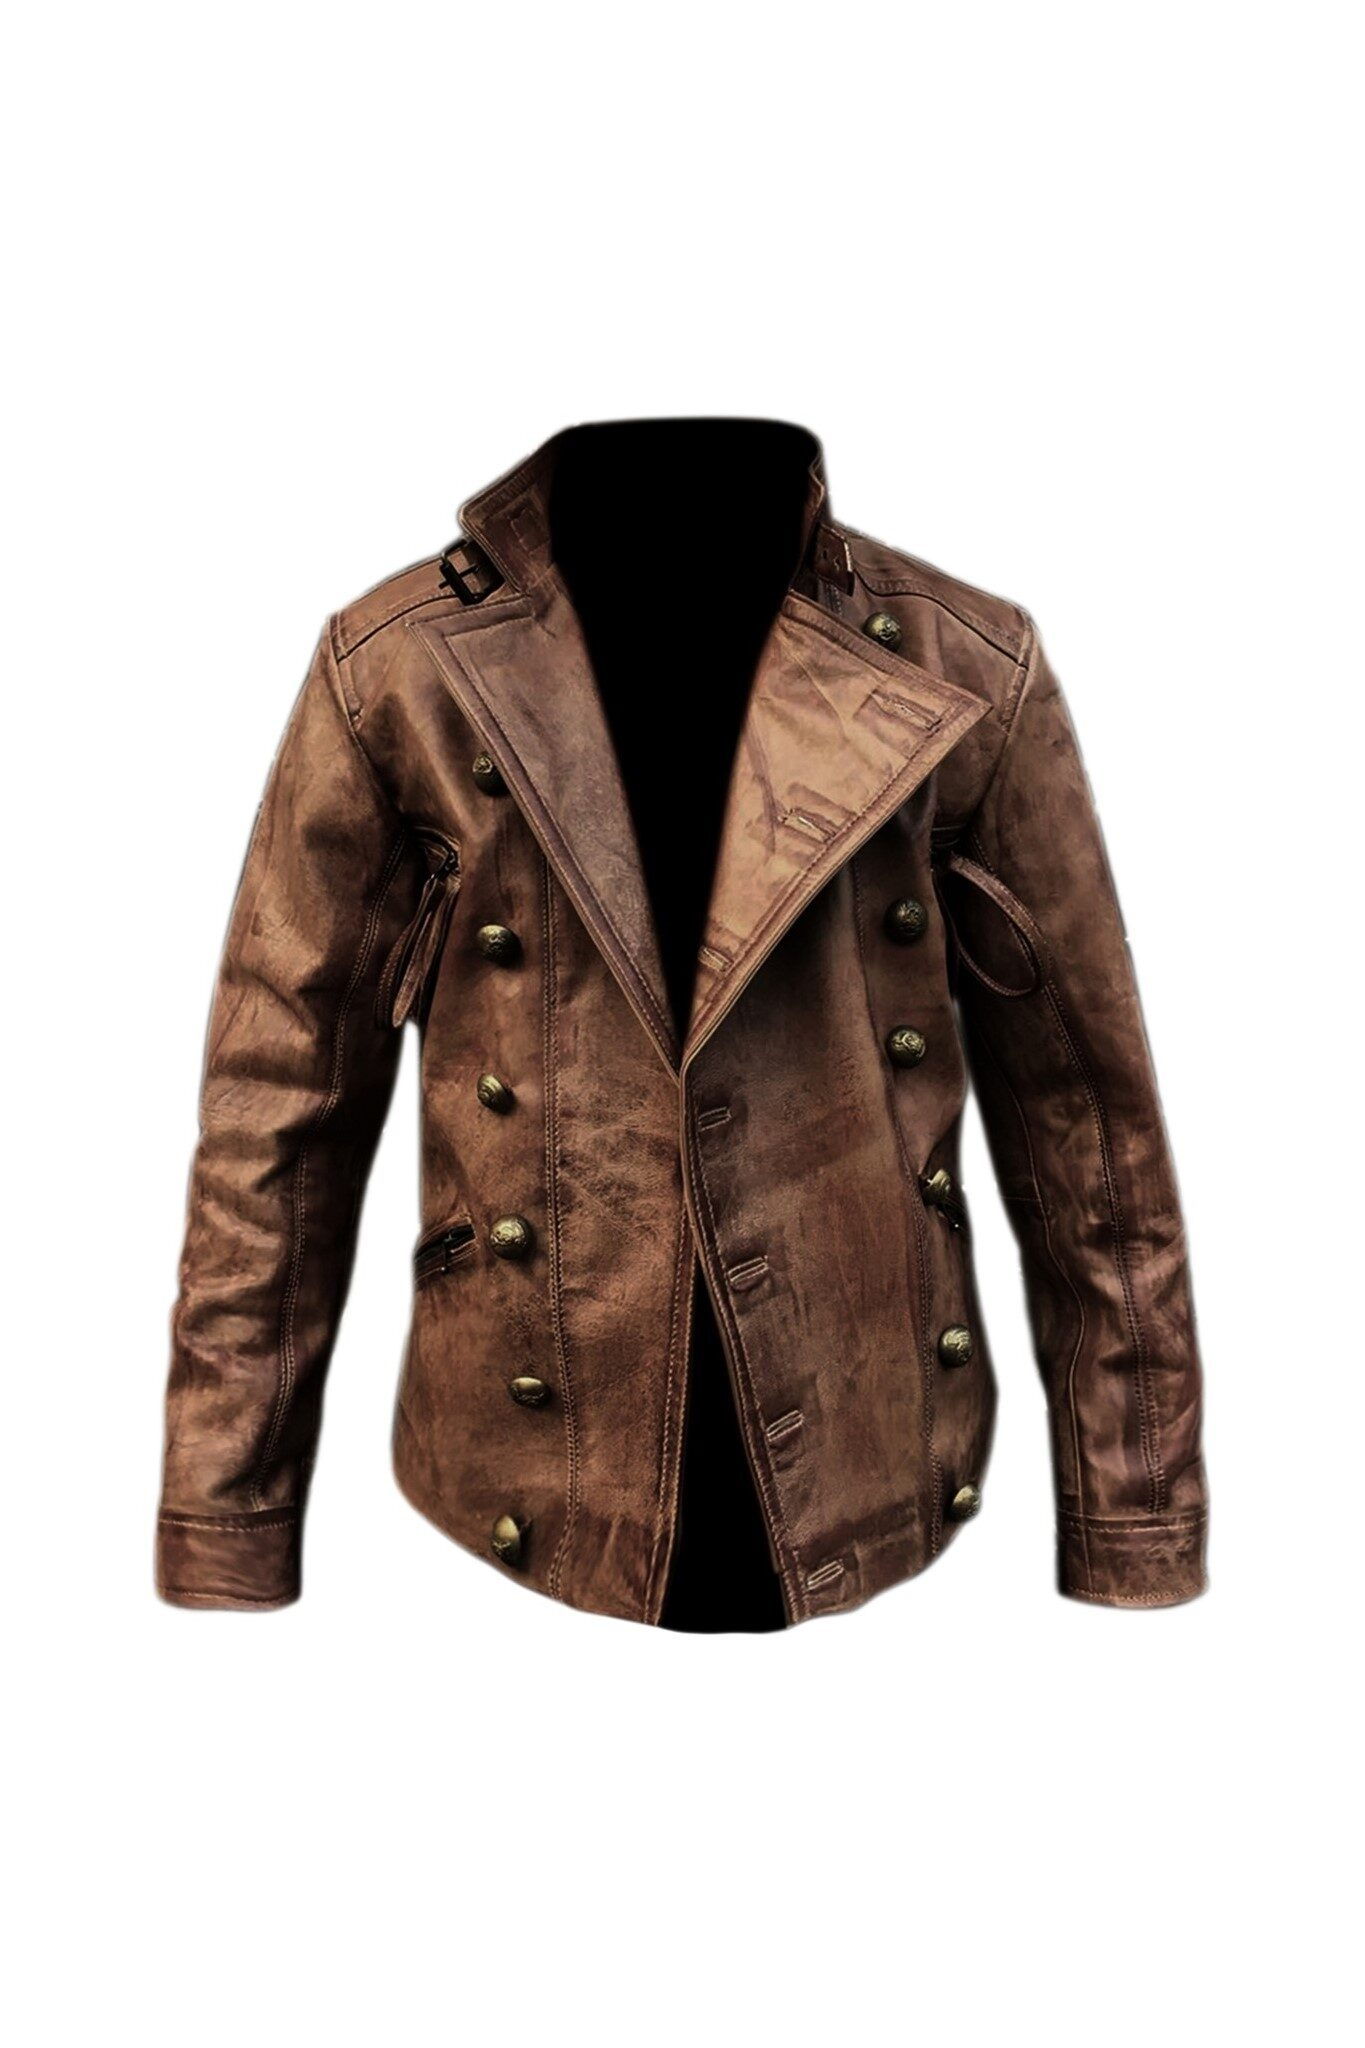 Aqua distressed brown waxed leather jacket for men's